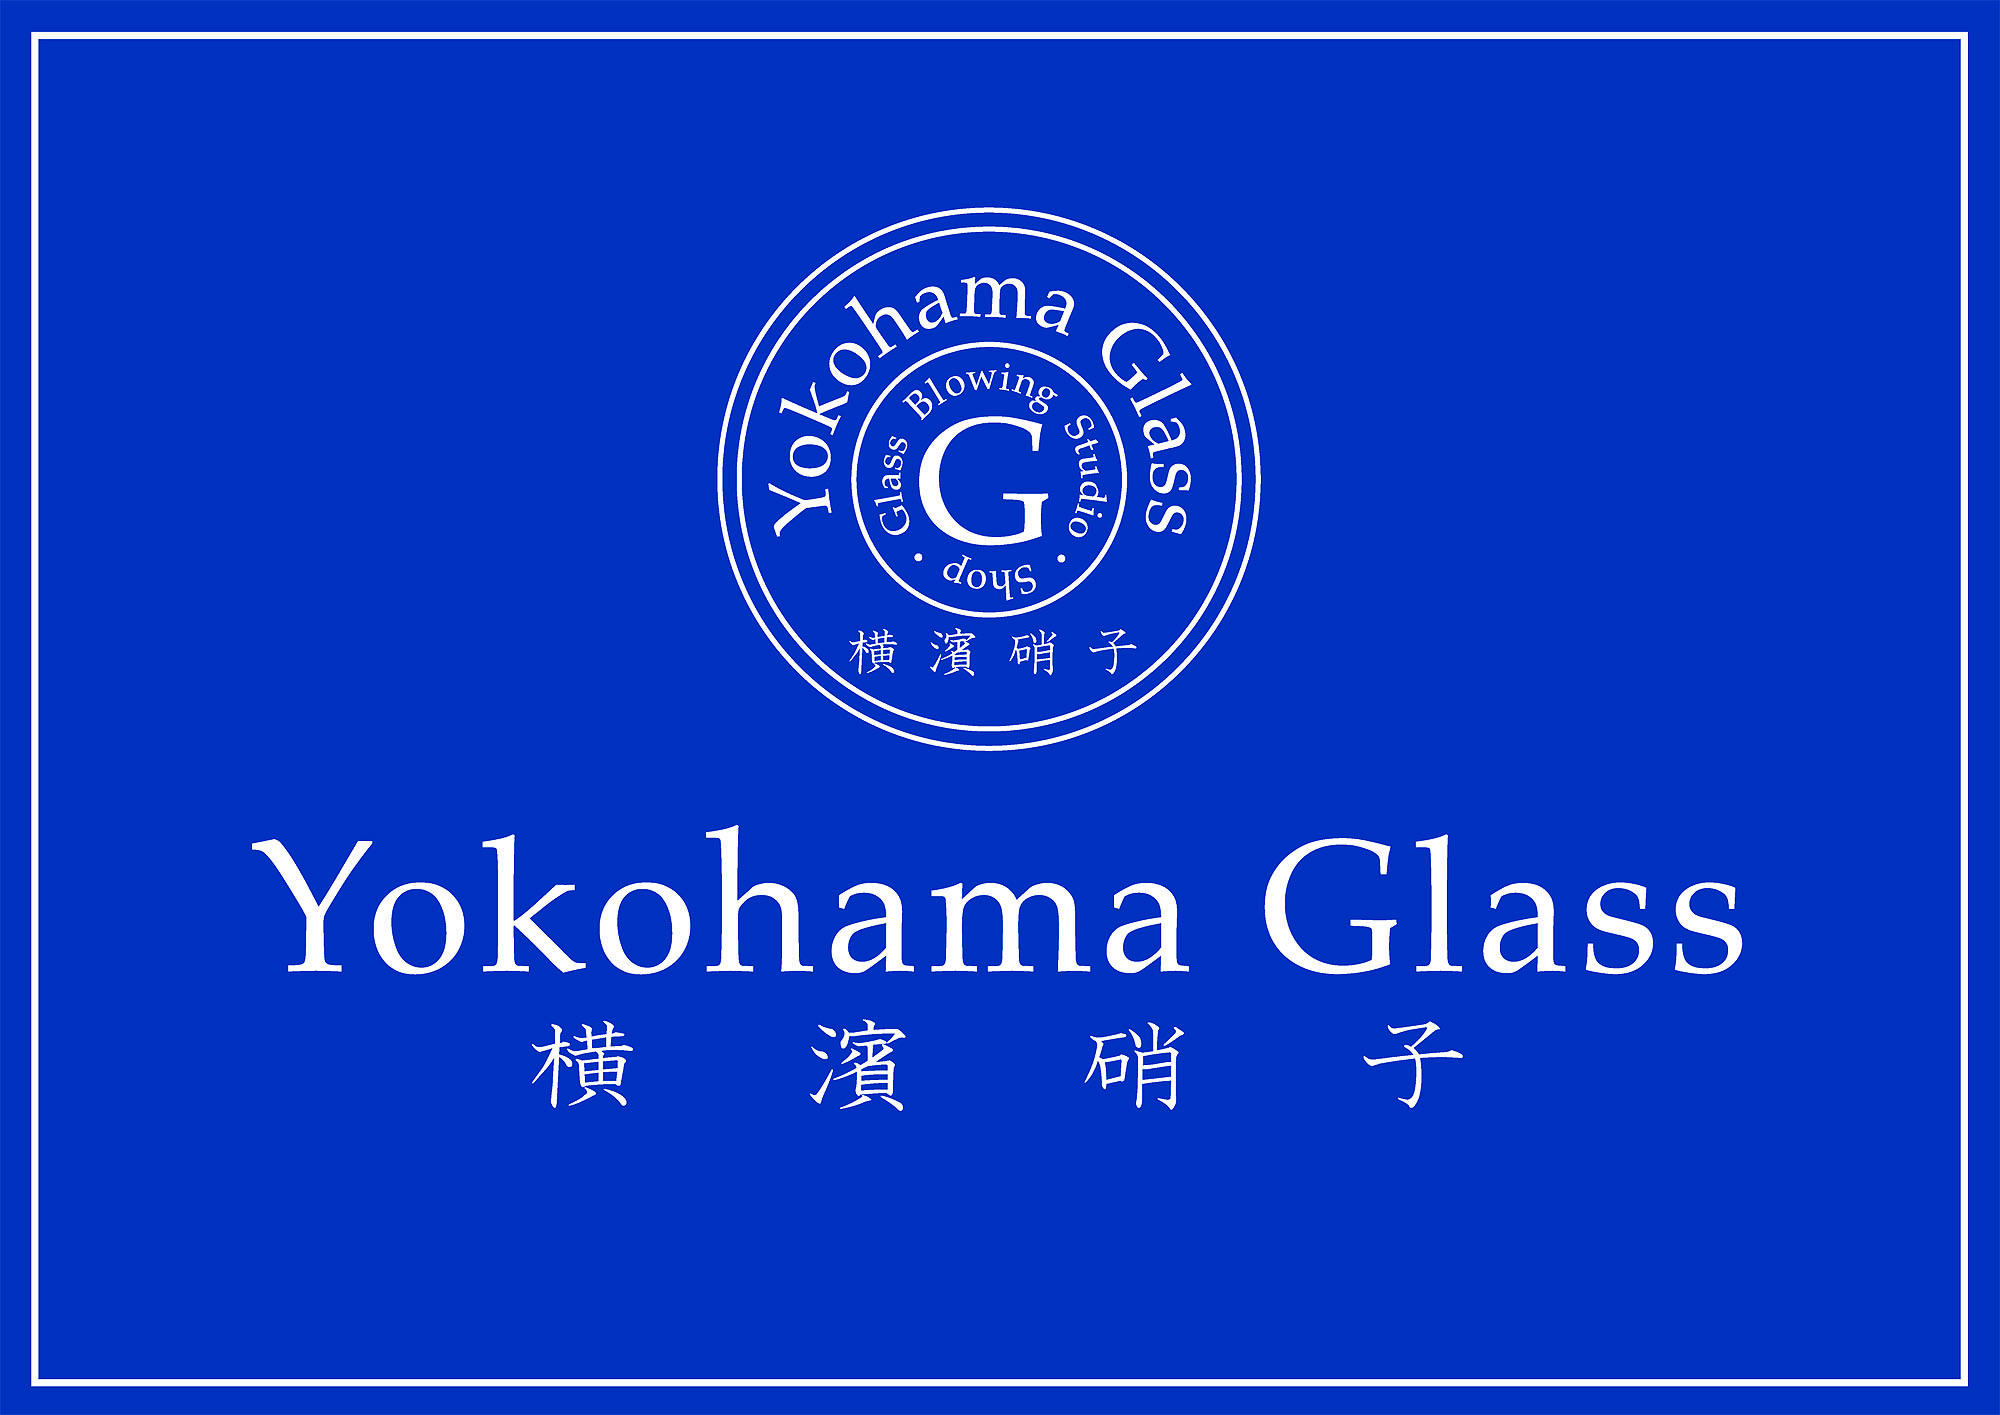 Yokohama Glass